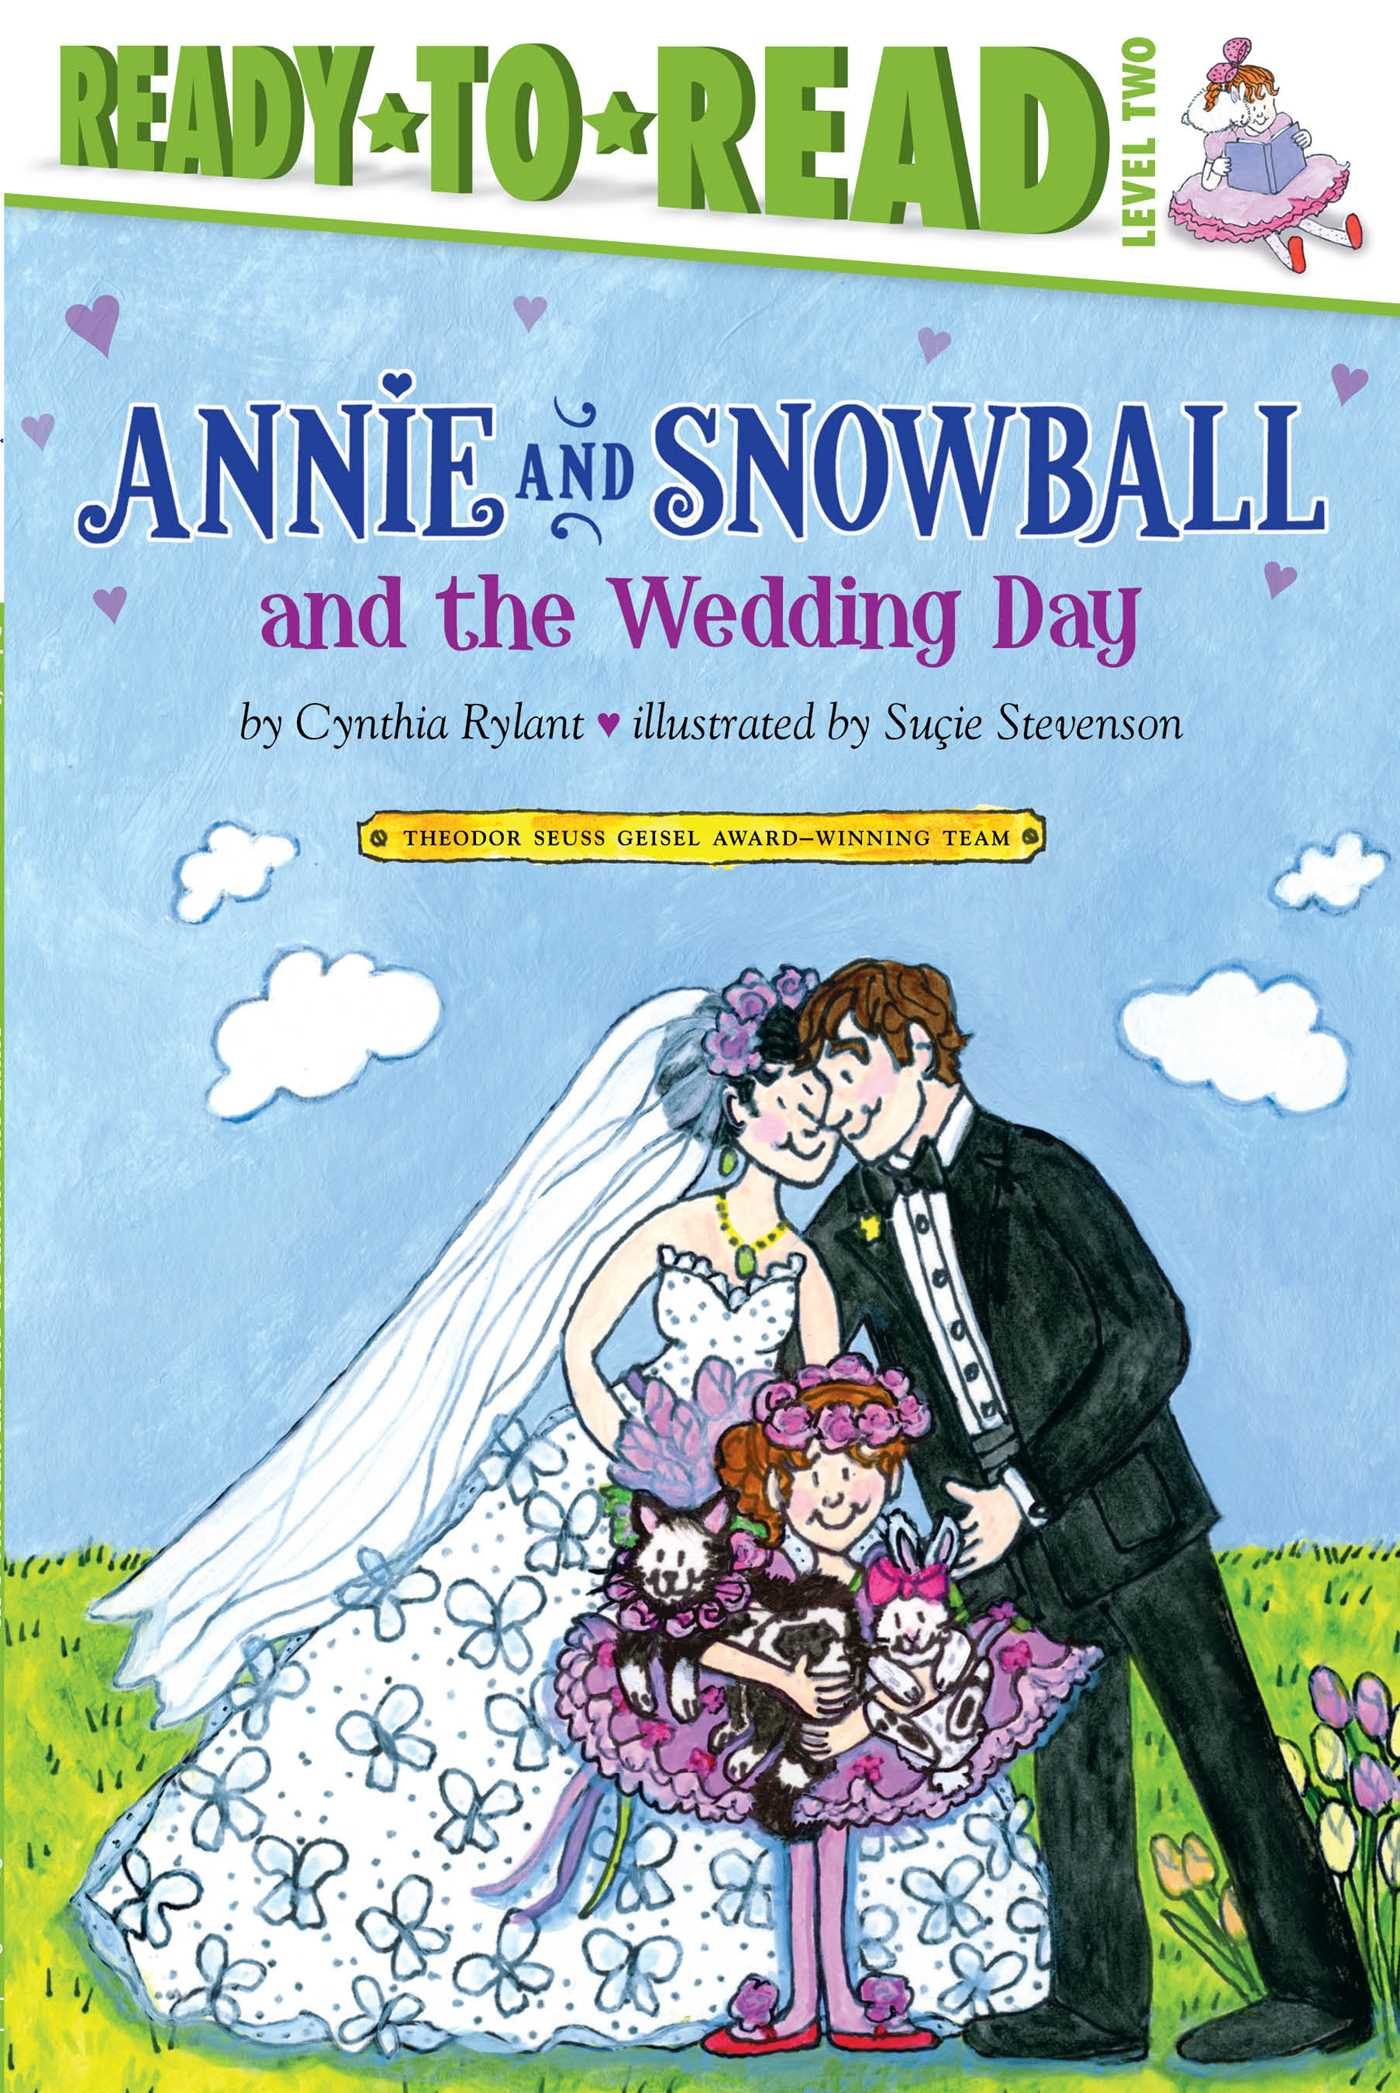 Annie and snowball and the wedding day 9781416982494 hr